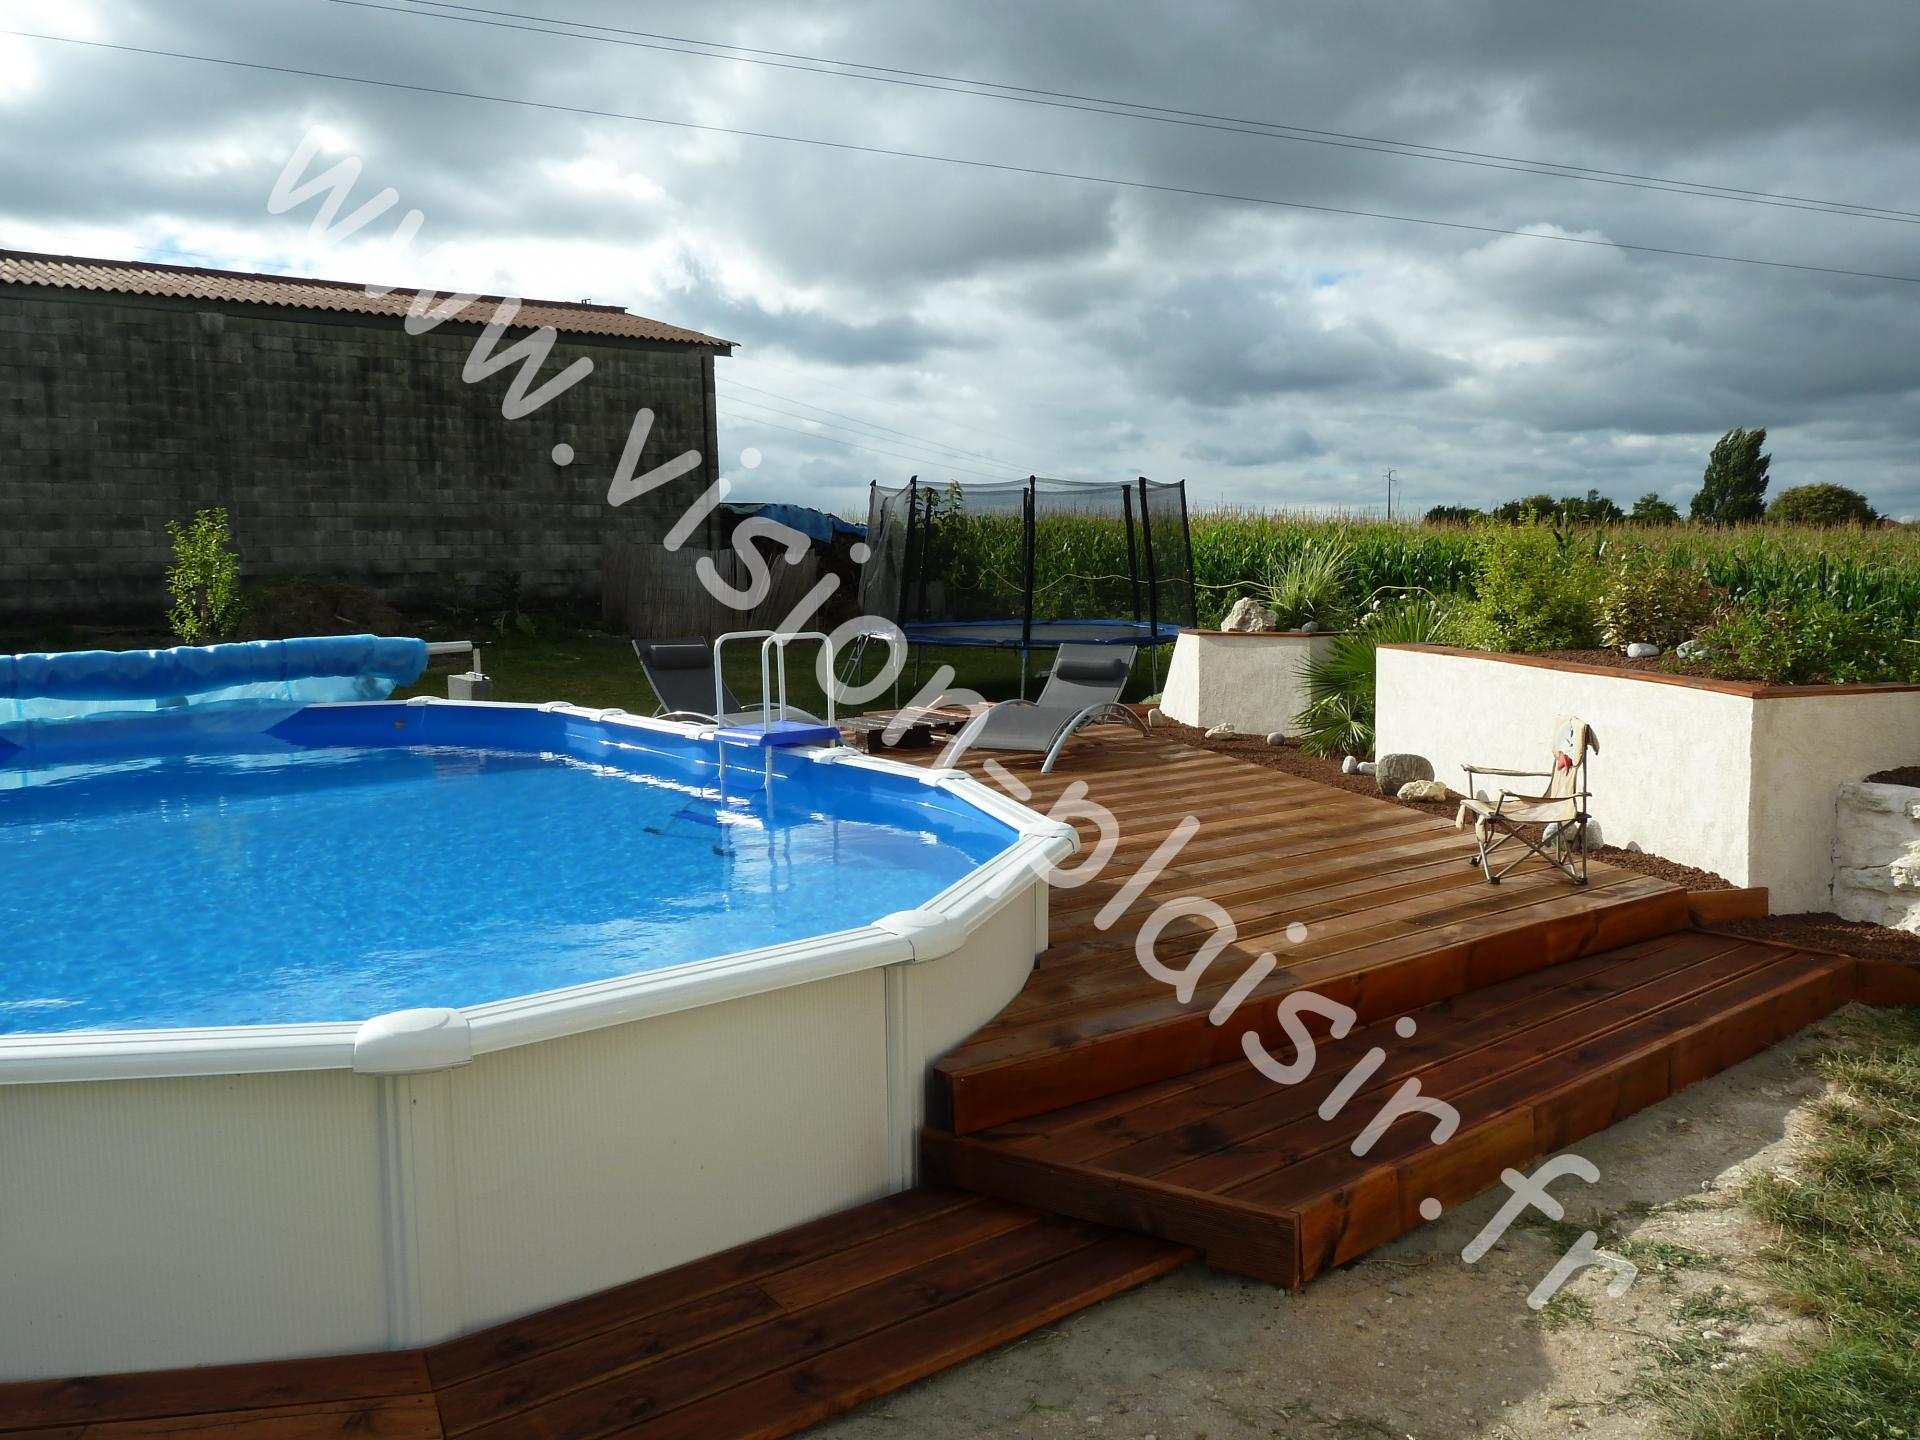 Blog de vision plaisir piscine hors sol semi enterr e for Piscine sol